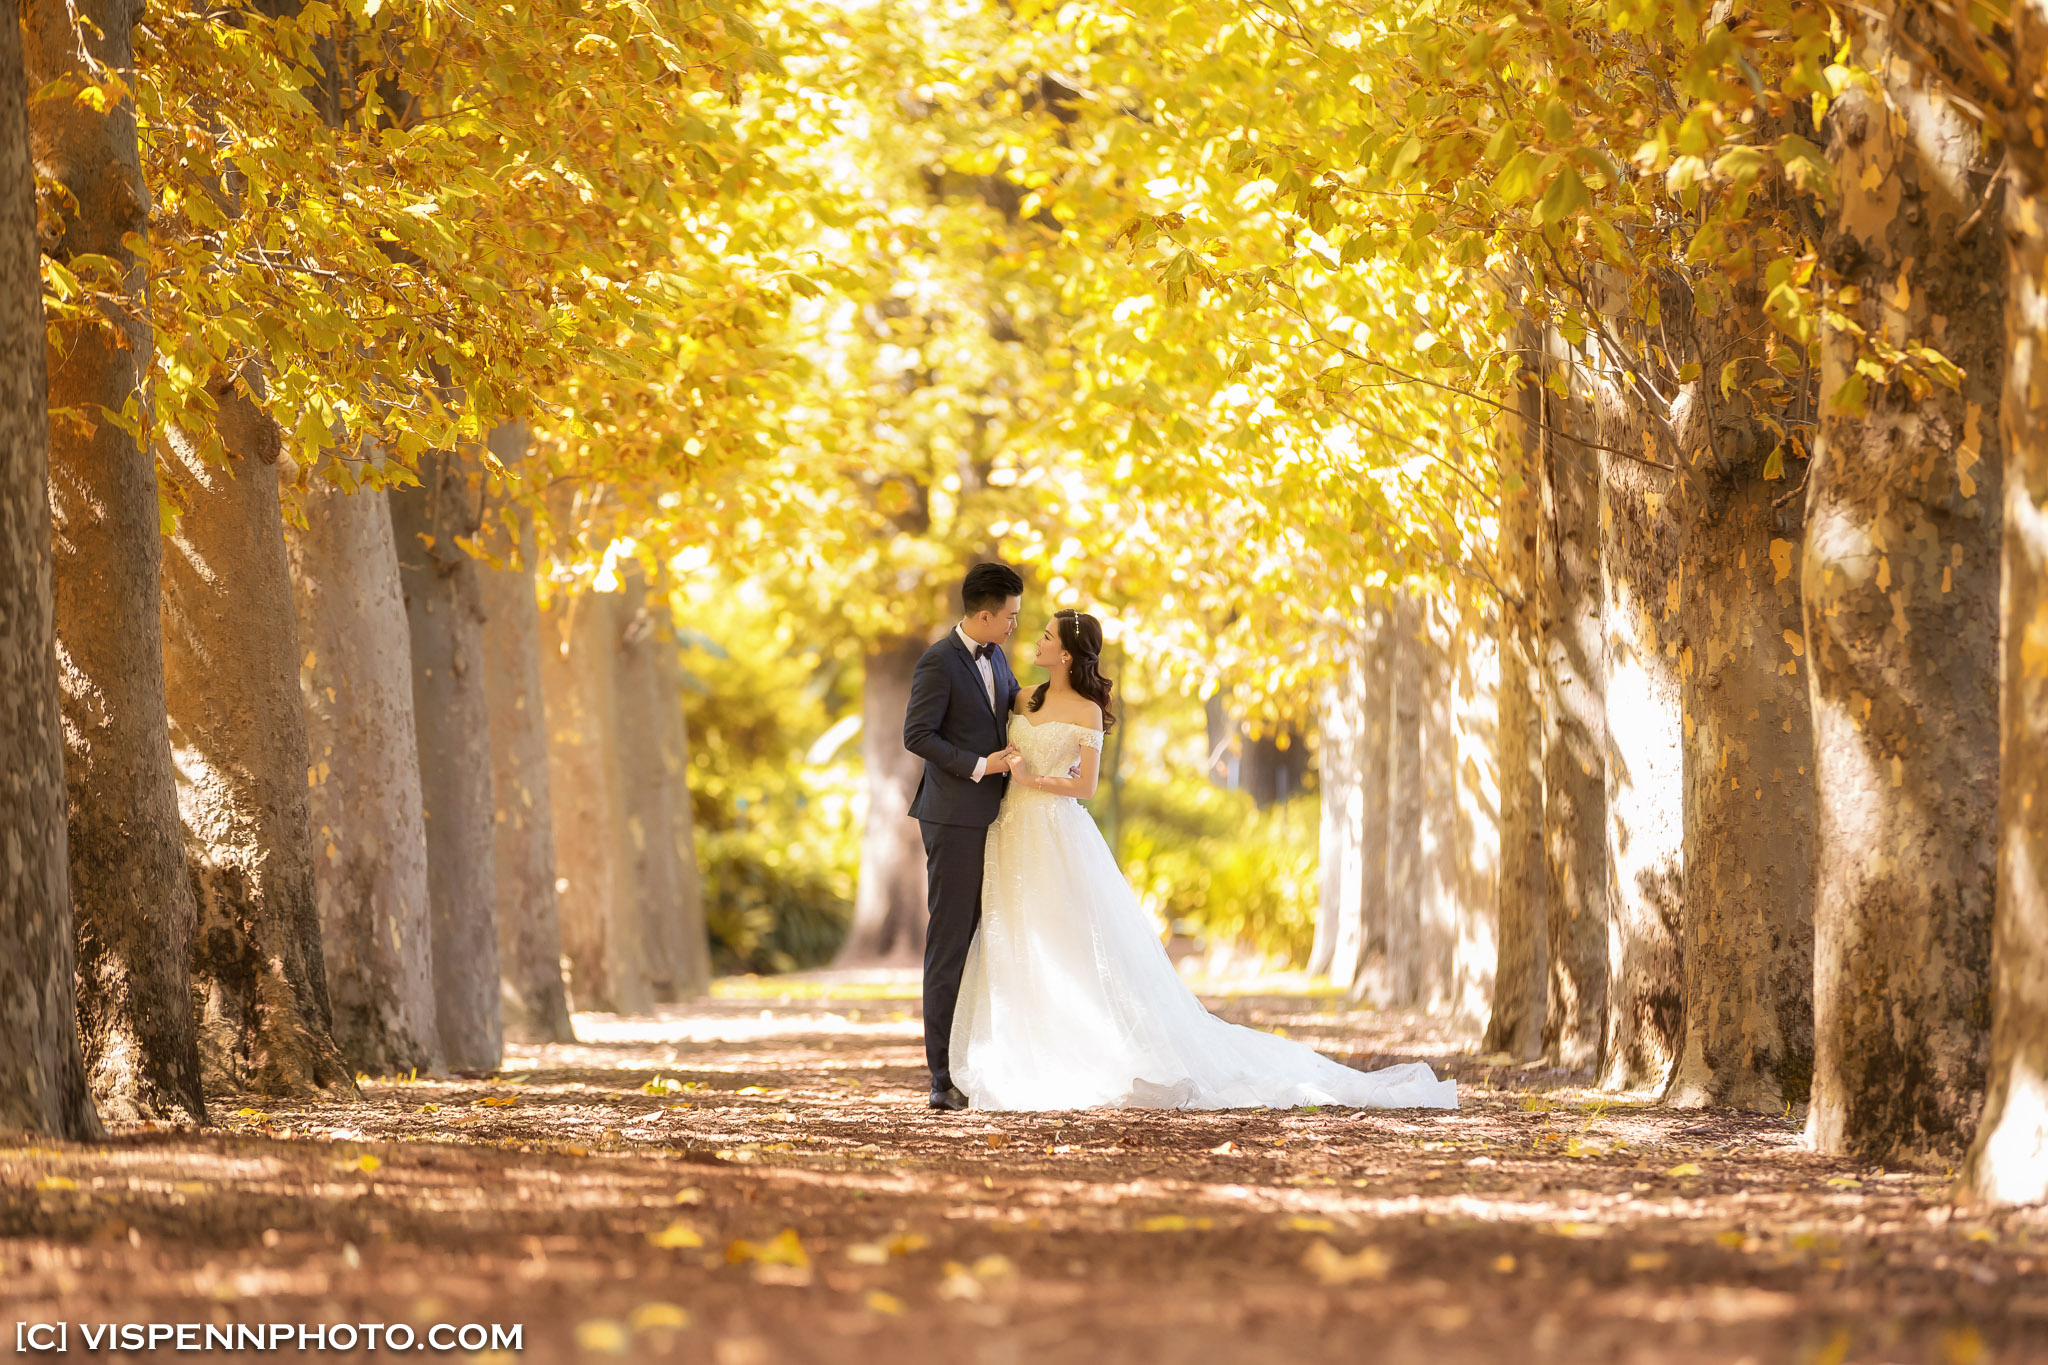 PRE WEDDING Photography Melbourne AndyCHEN 1360 1DX ZHPENN